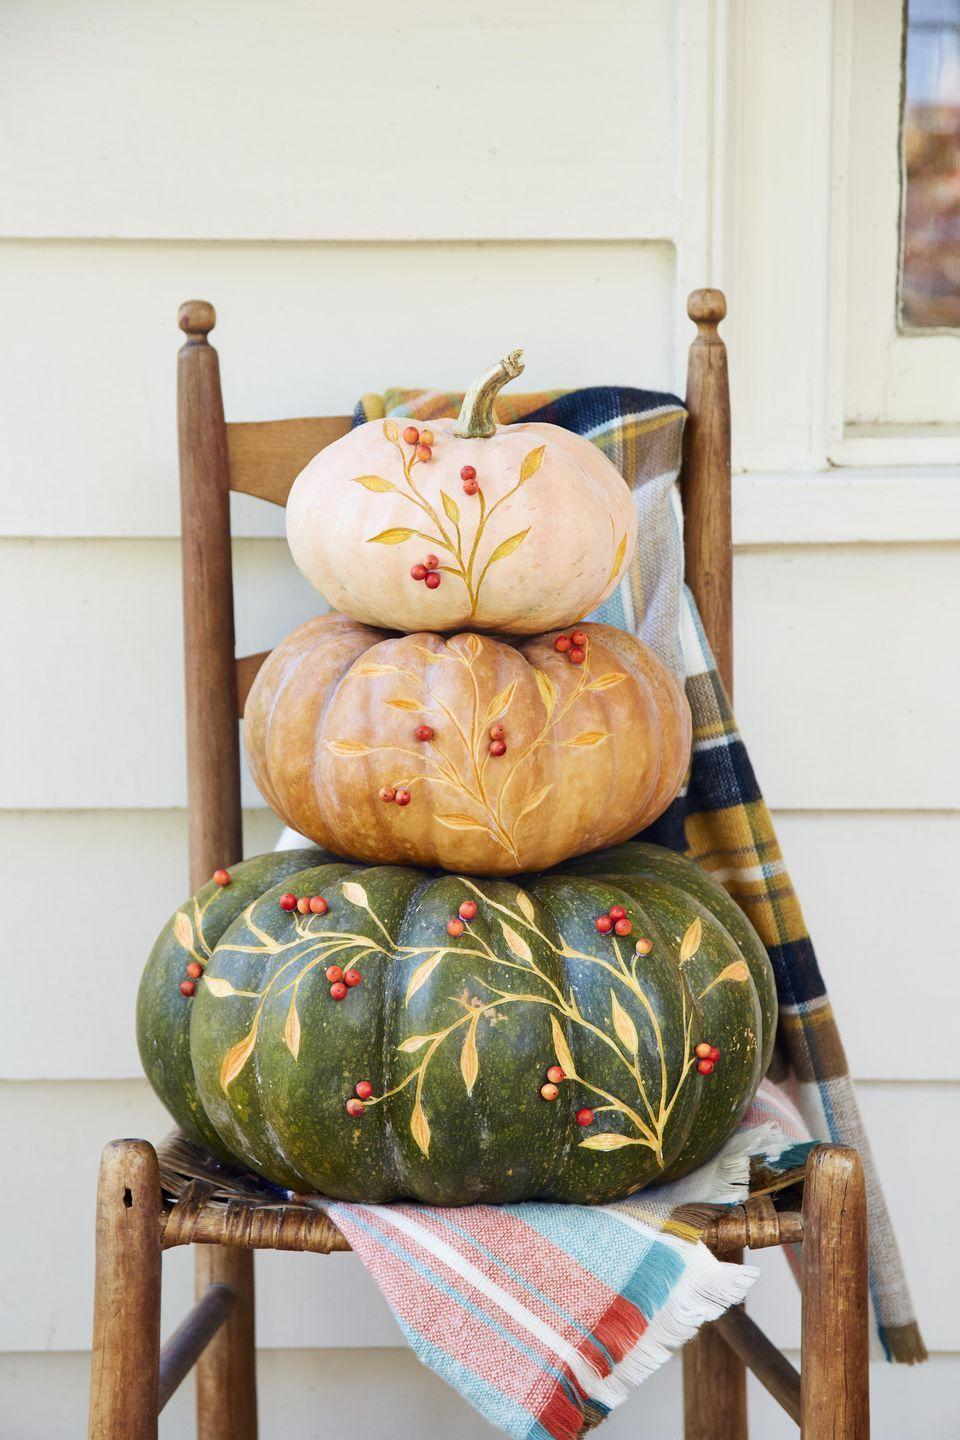 <p>The perfect sophisticated decor for greeting guests to your front door. Place directly on the porch or layer on a vintage ladderback chair with different color plaid blankets.</p><p><strong>To make:</strong> Purchase one large, one medium, and one small pumpkin (any color combo works) that stack nicely. Remove the stems from the large and medium pumpkin. Lightly sketch a vine pattern on a pumpkin with a pencil. Use a linoleum carving tool to etch out the pattern. Once complete attach red berries or beads with hot glue.</p>